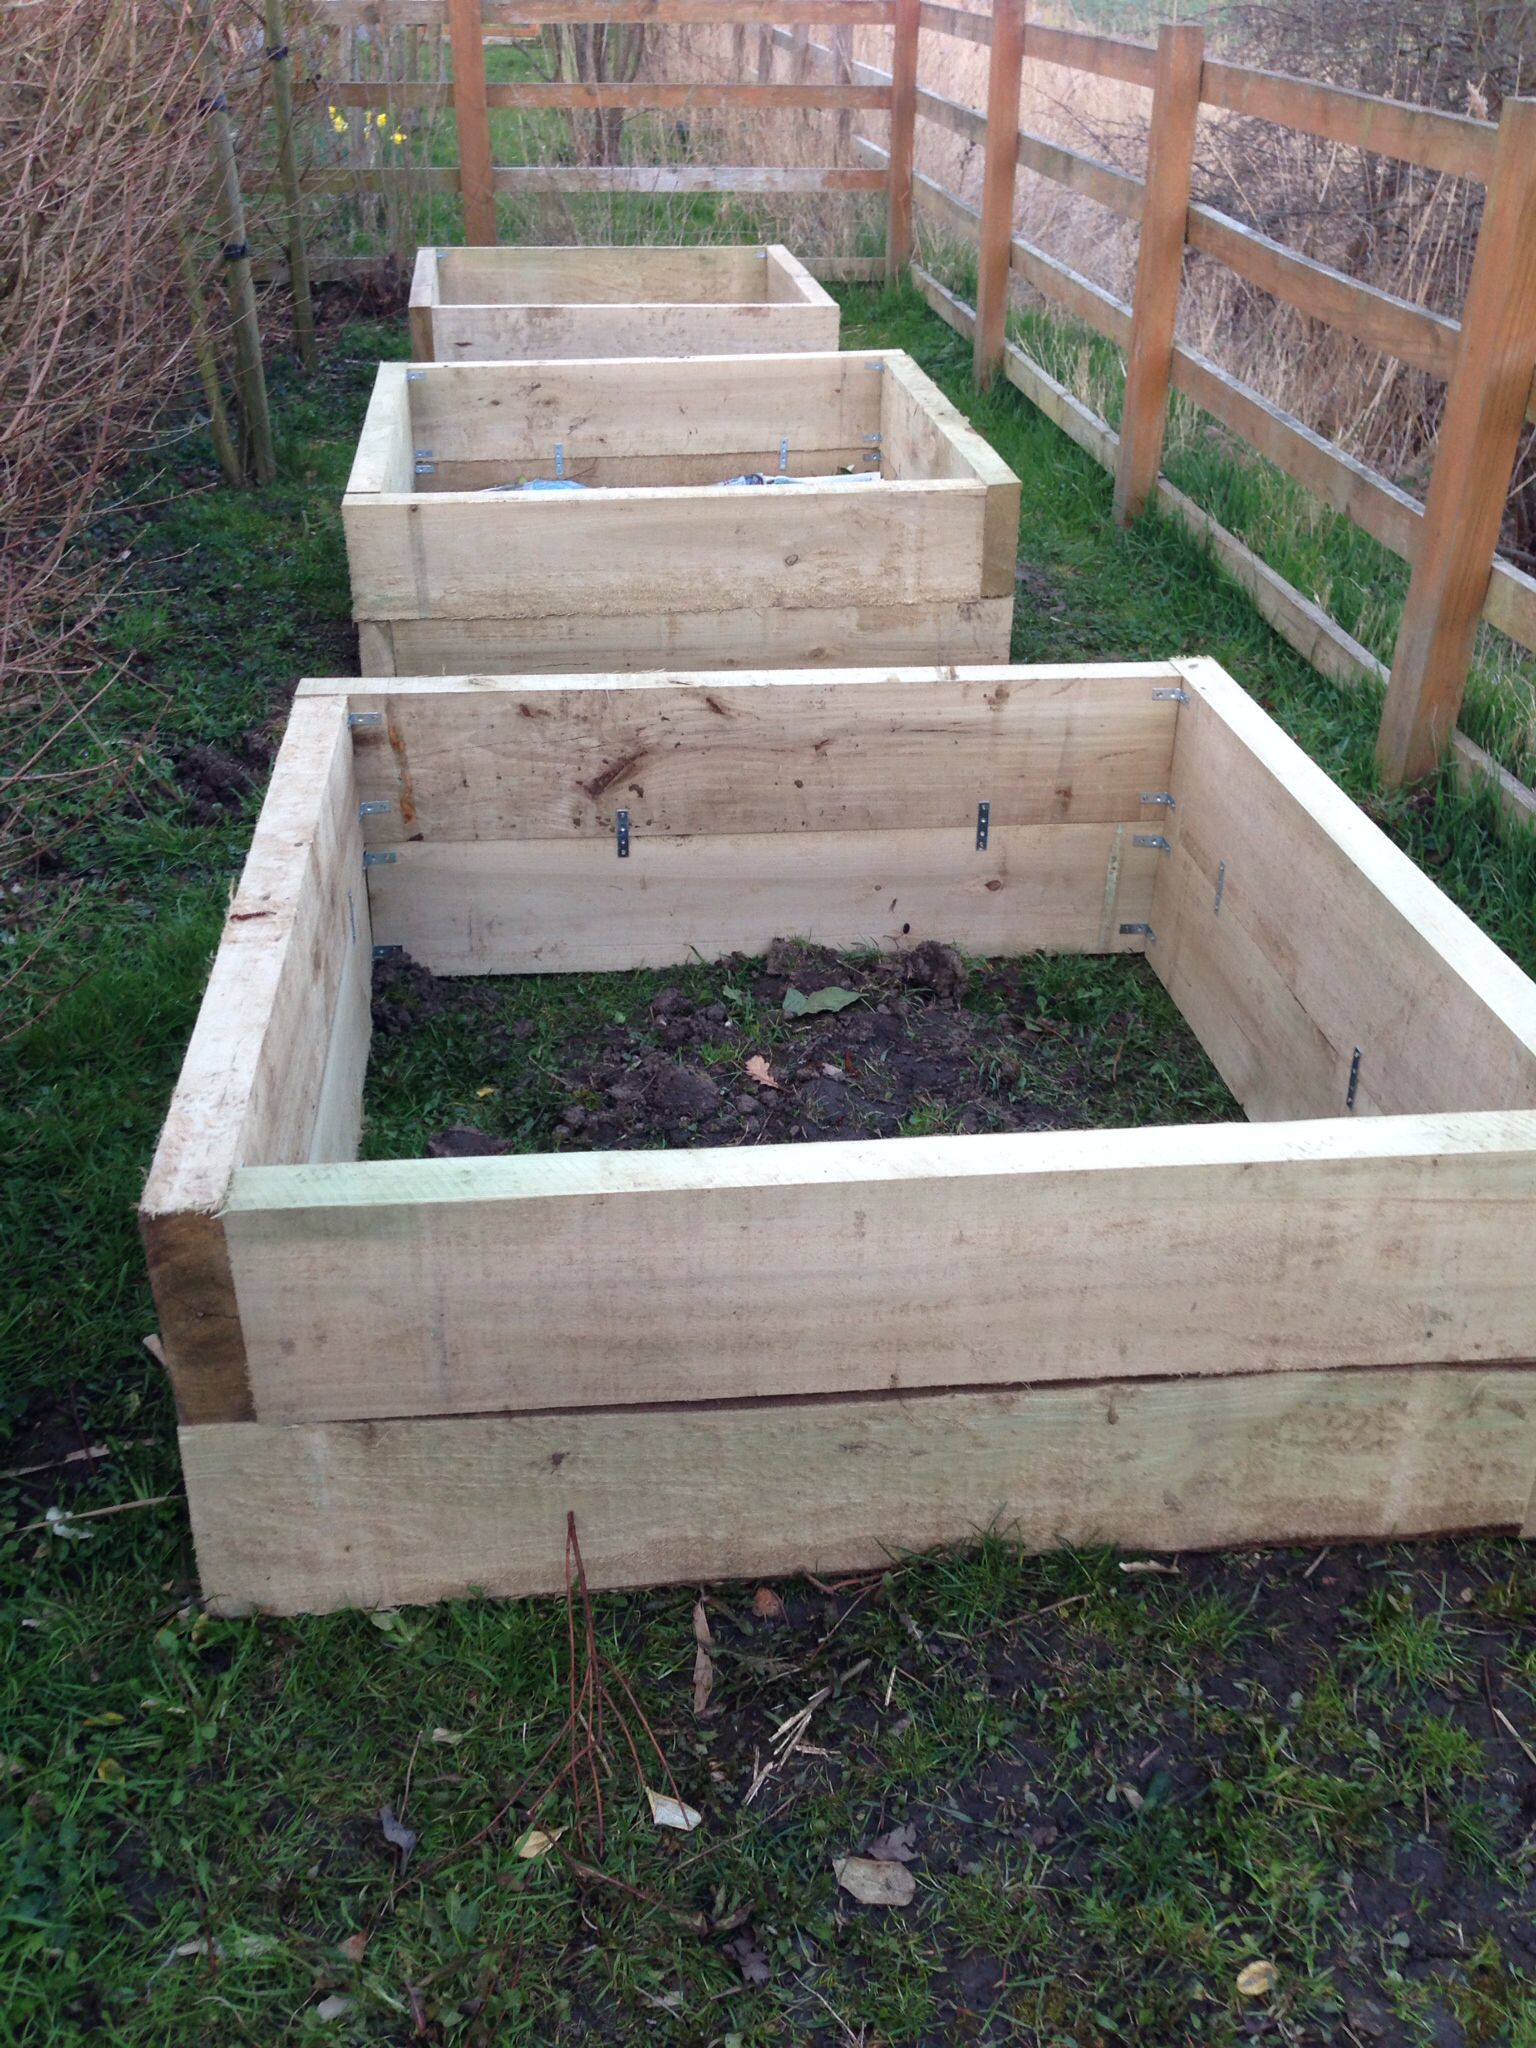 Raised beds built